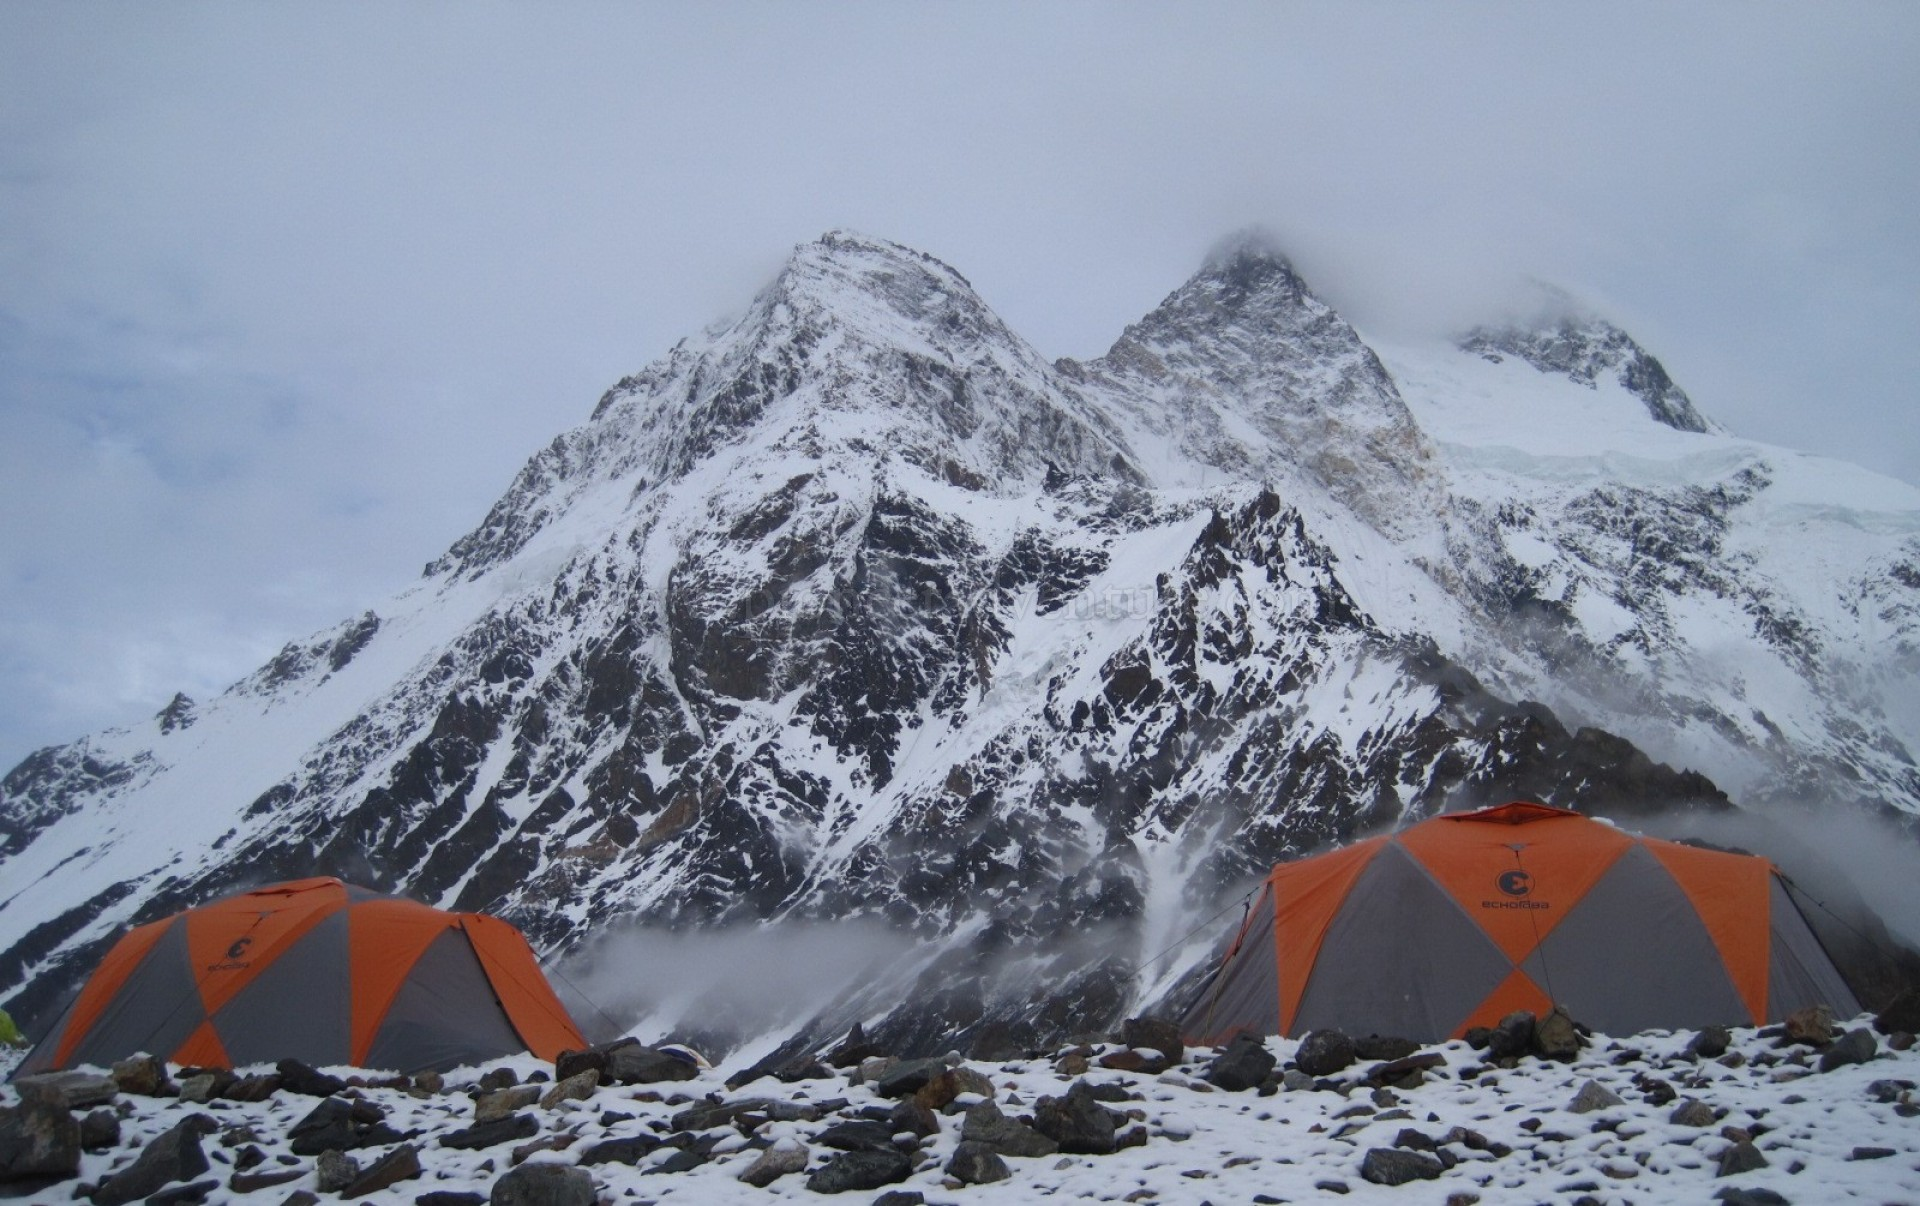 Mt. Broad Peak Expedition